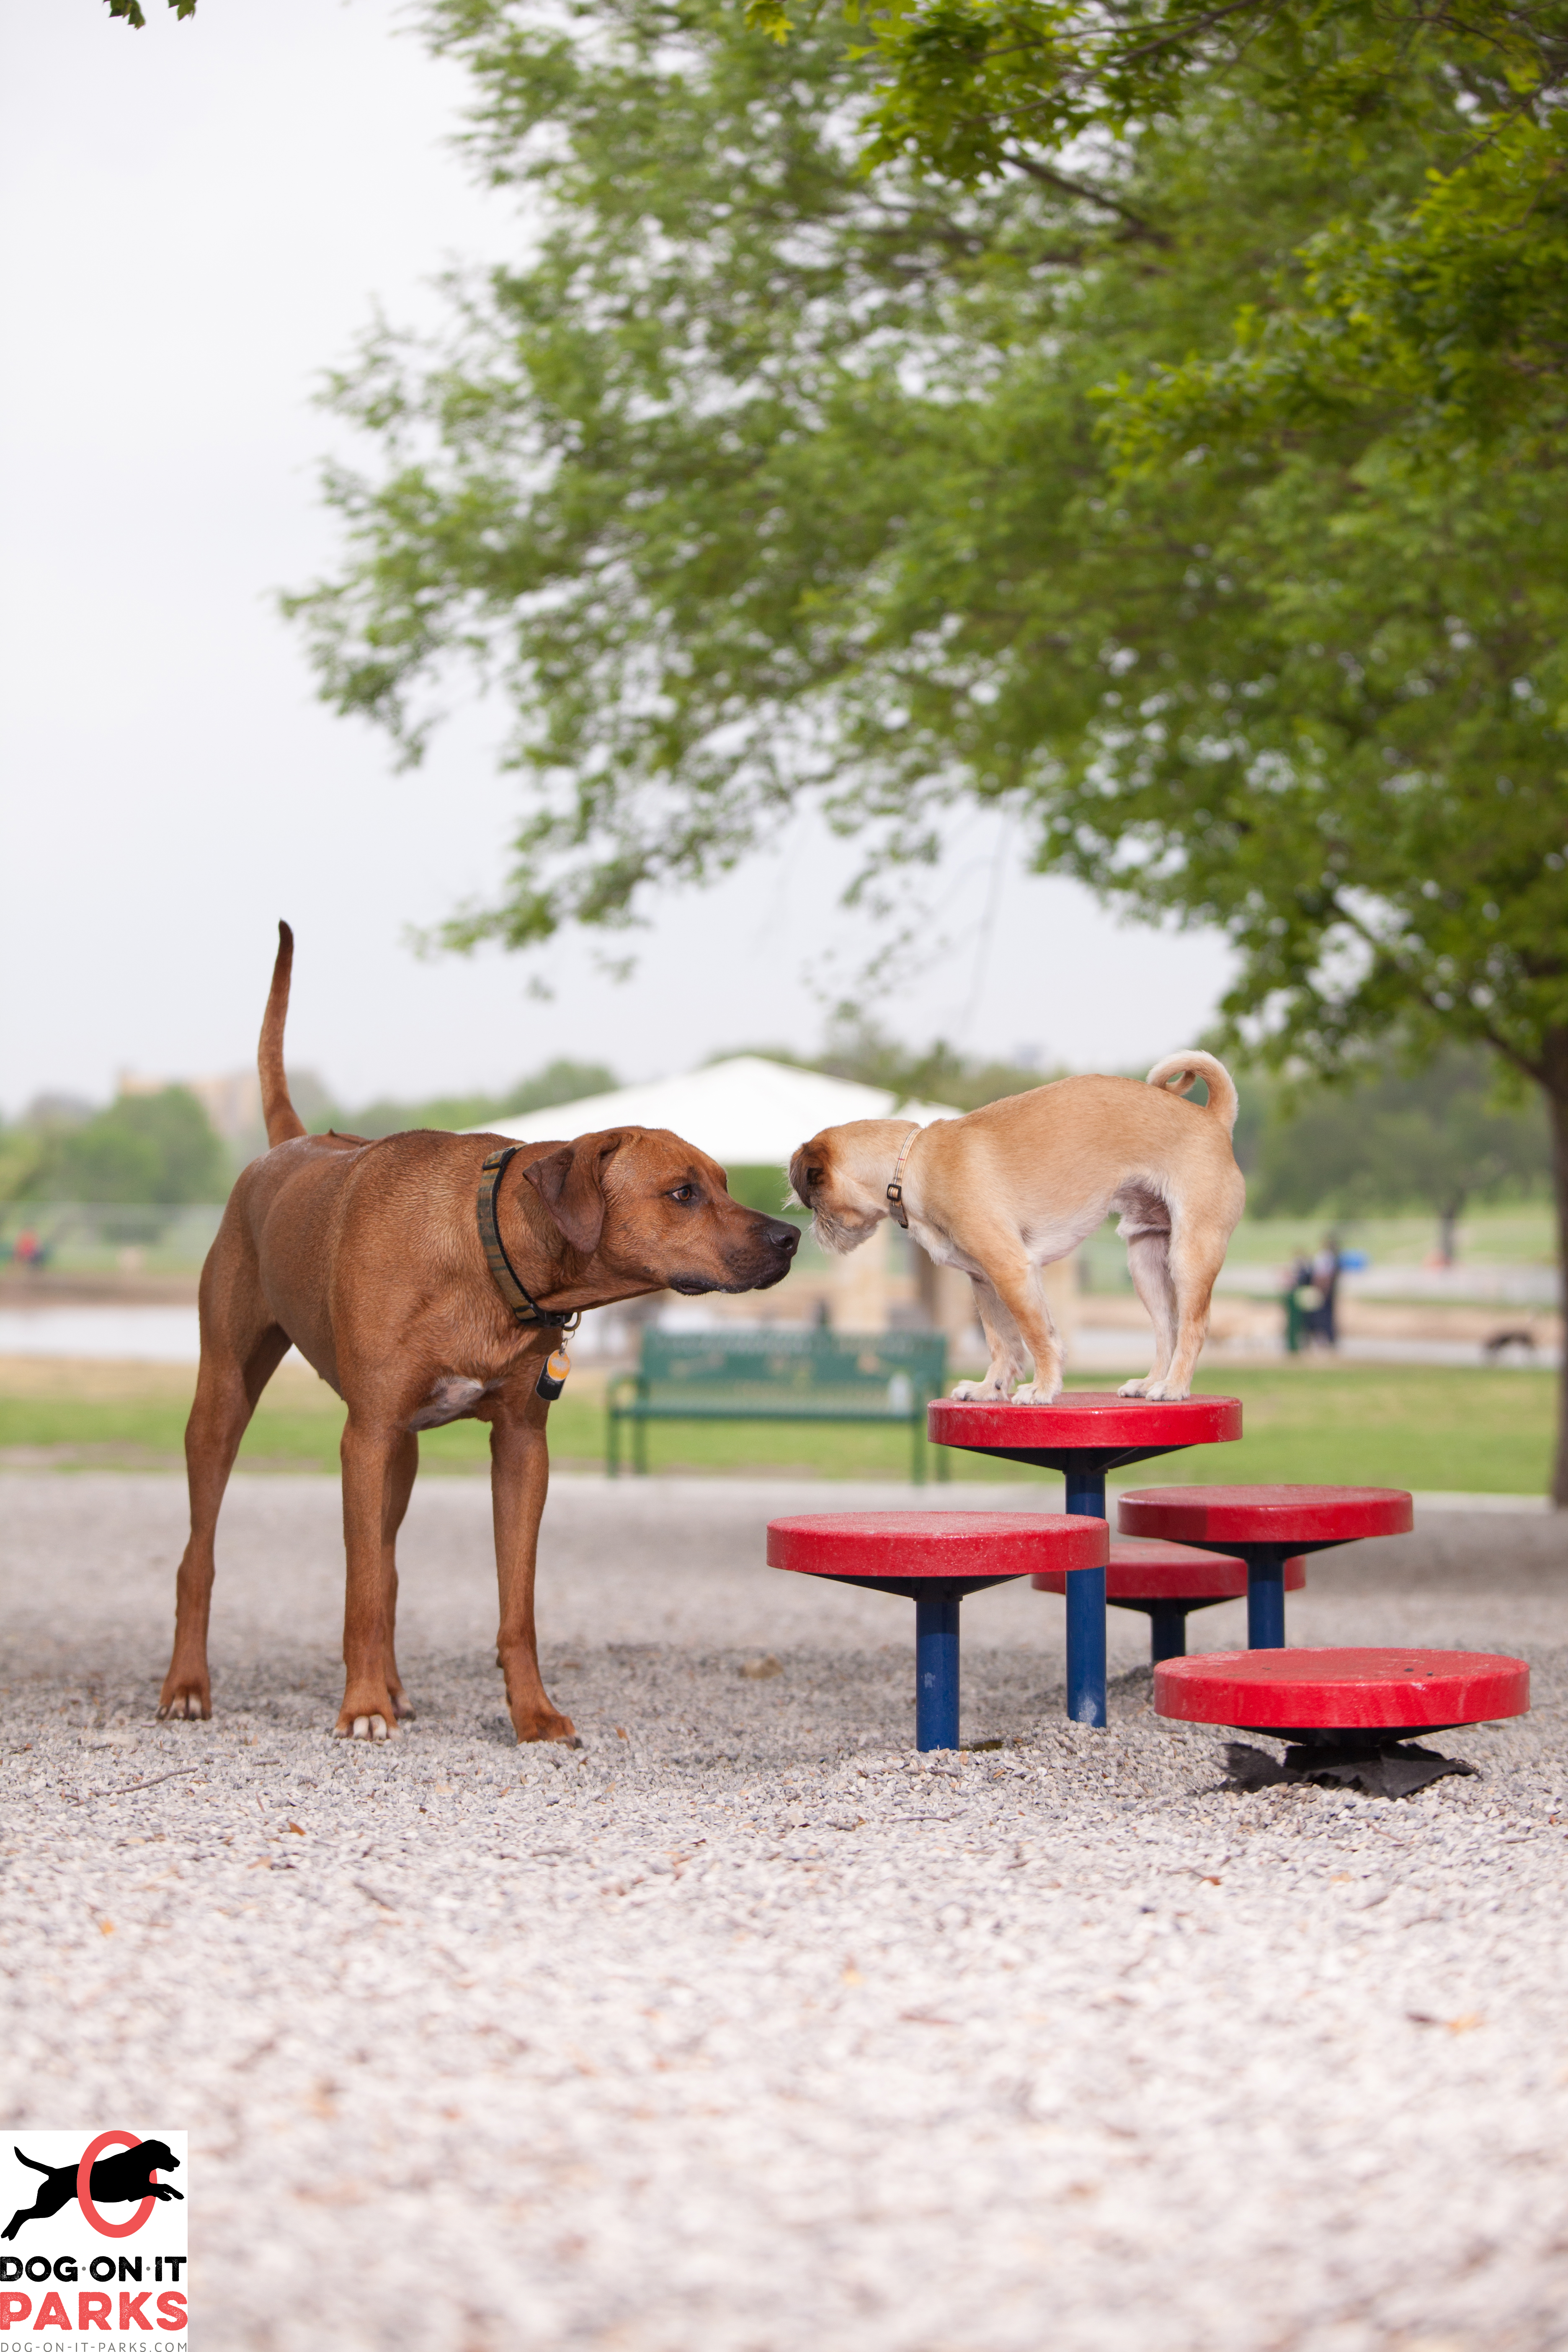 Dog Park Etiquette The Do S And Don Ts Dog On It Parks Blog